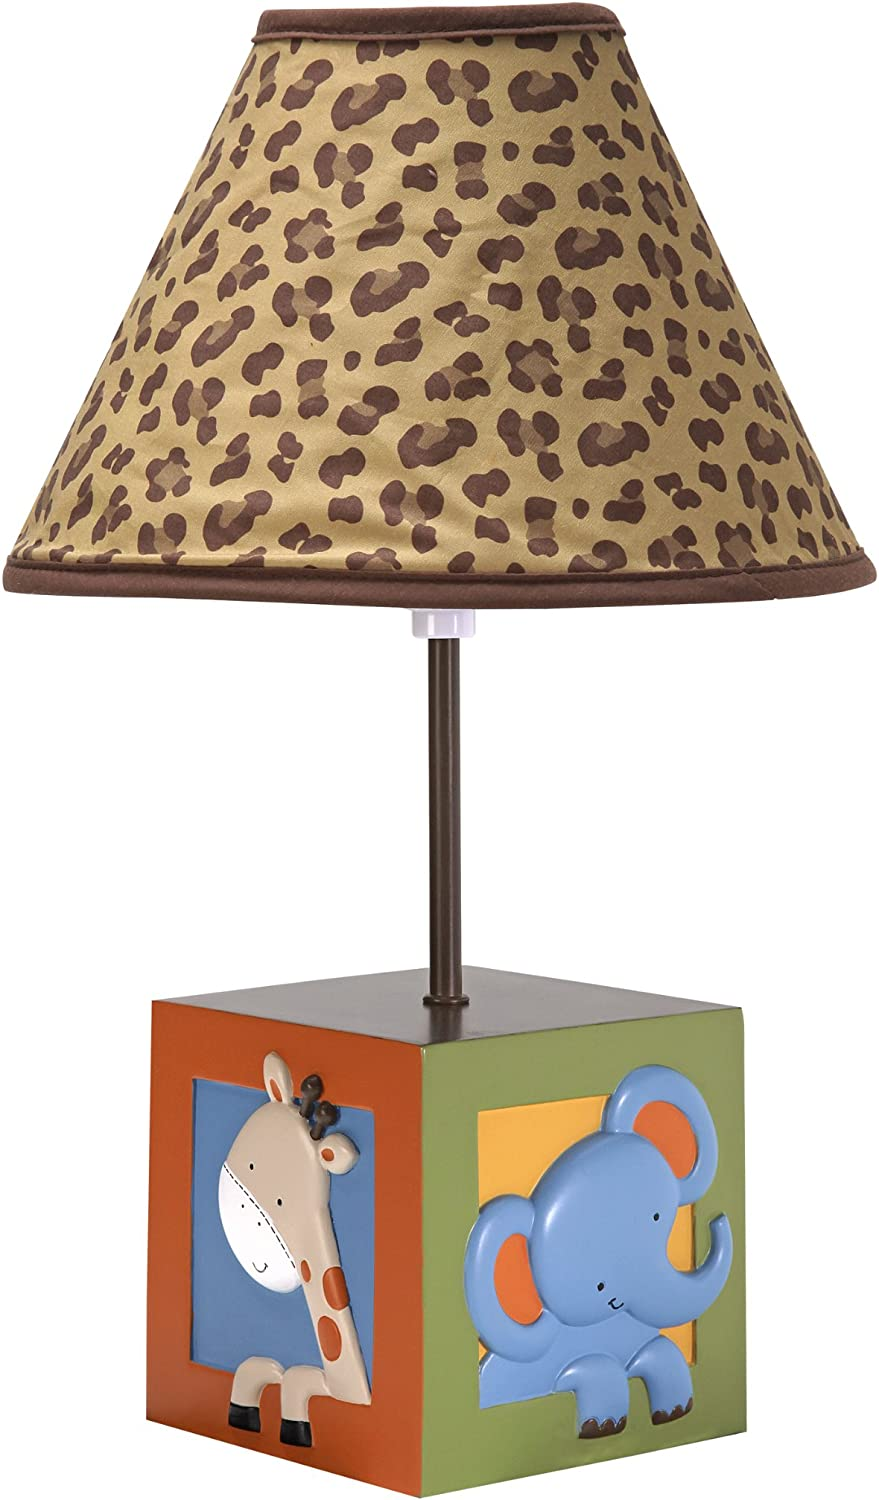 NoJo Lamp and Shade, Zambia (Discontinued by Manufacturer)